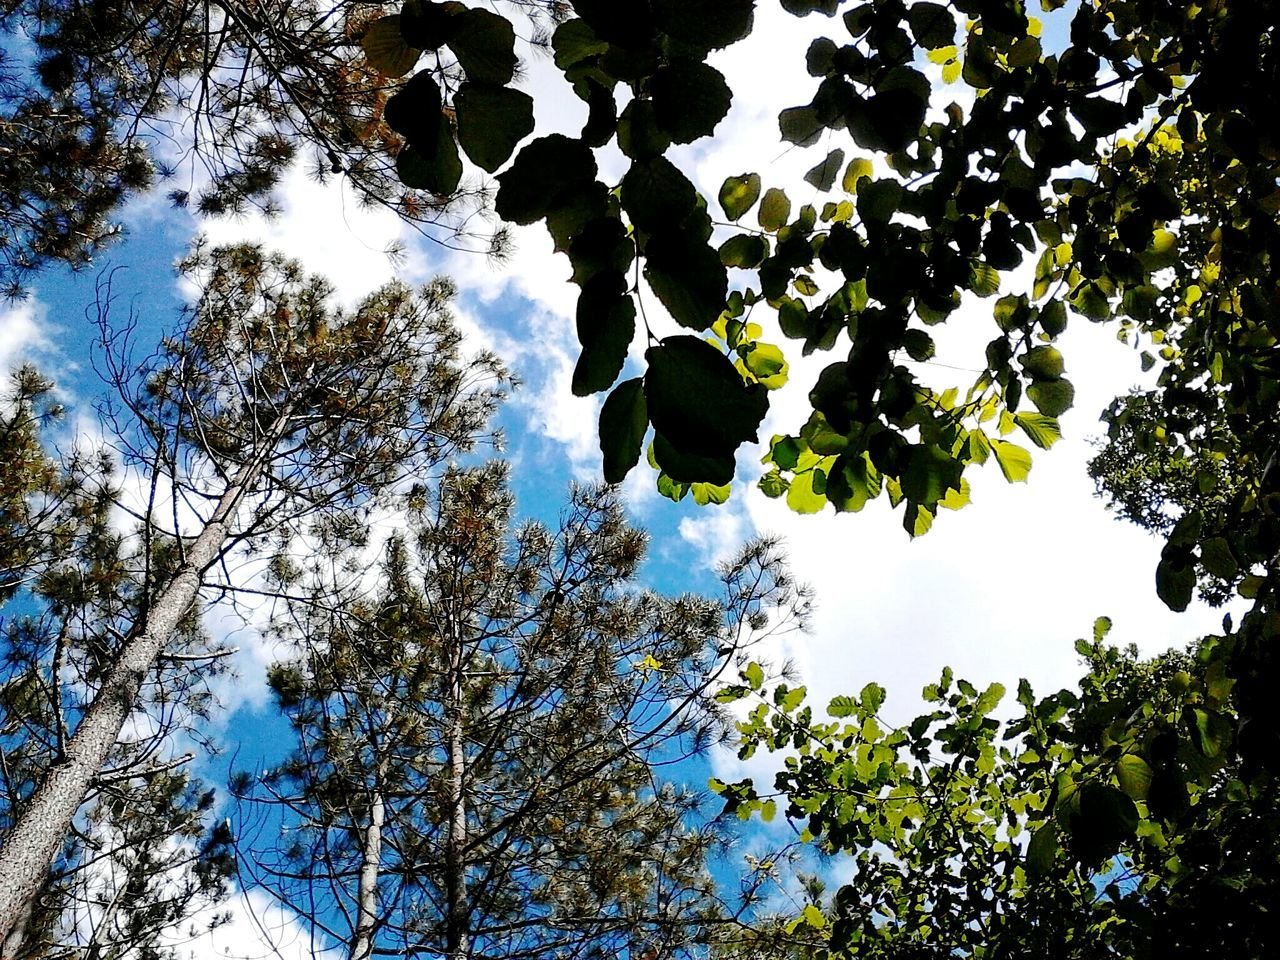 Sky is the limit. Eyeemnaturelover Eyeemnature Takingphotos Green Trees Sky Clouds Clouds And Sky Florest Relax Enjoyingtheview Pinetrees Leaves Upwards Color Contrast Dreaming Skyisthelimit